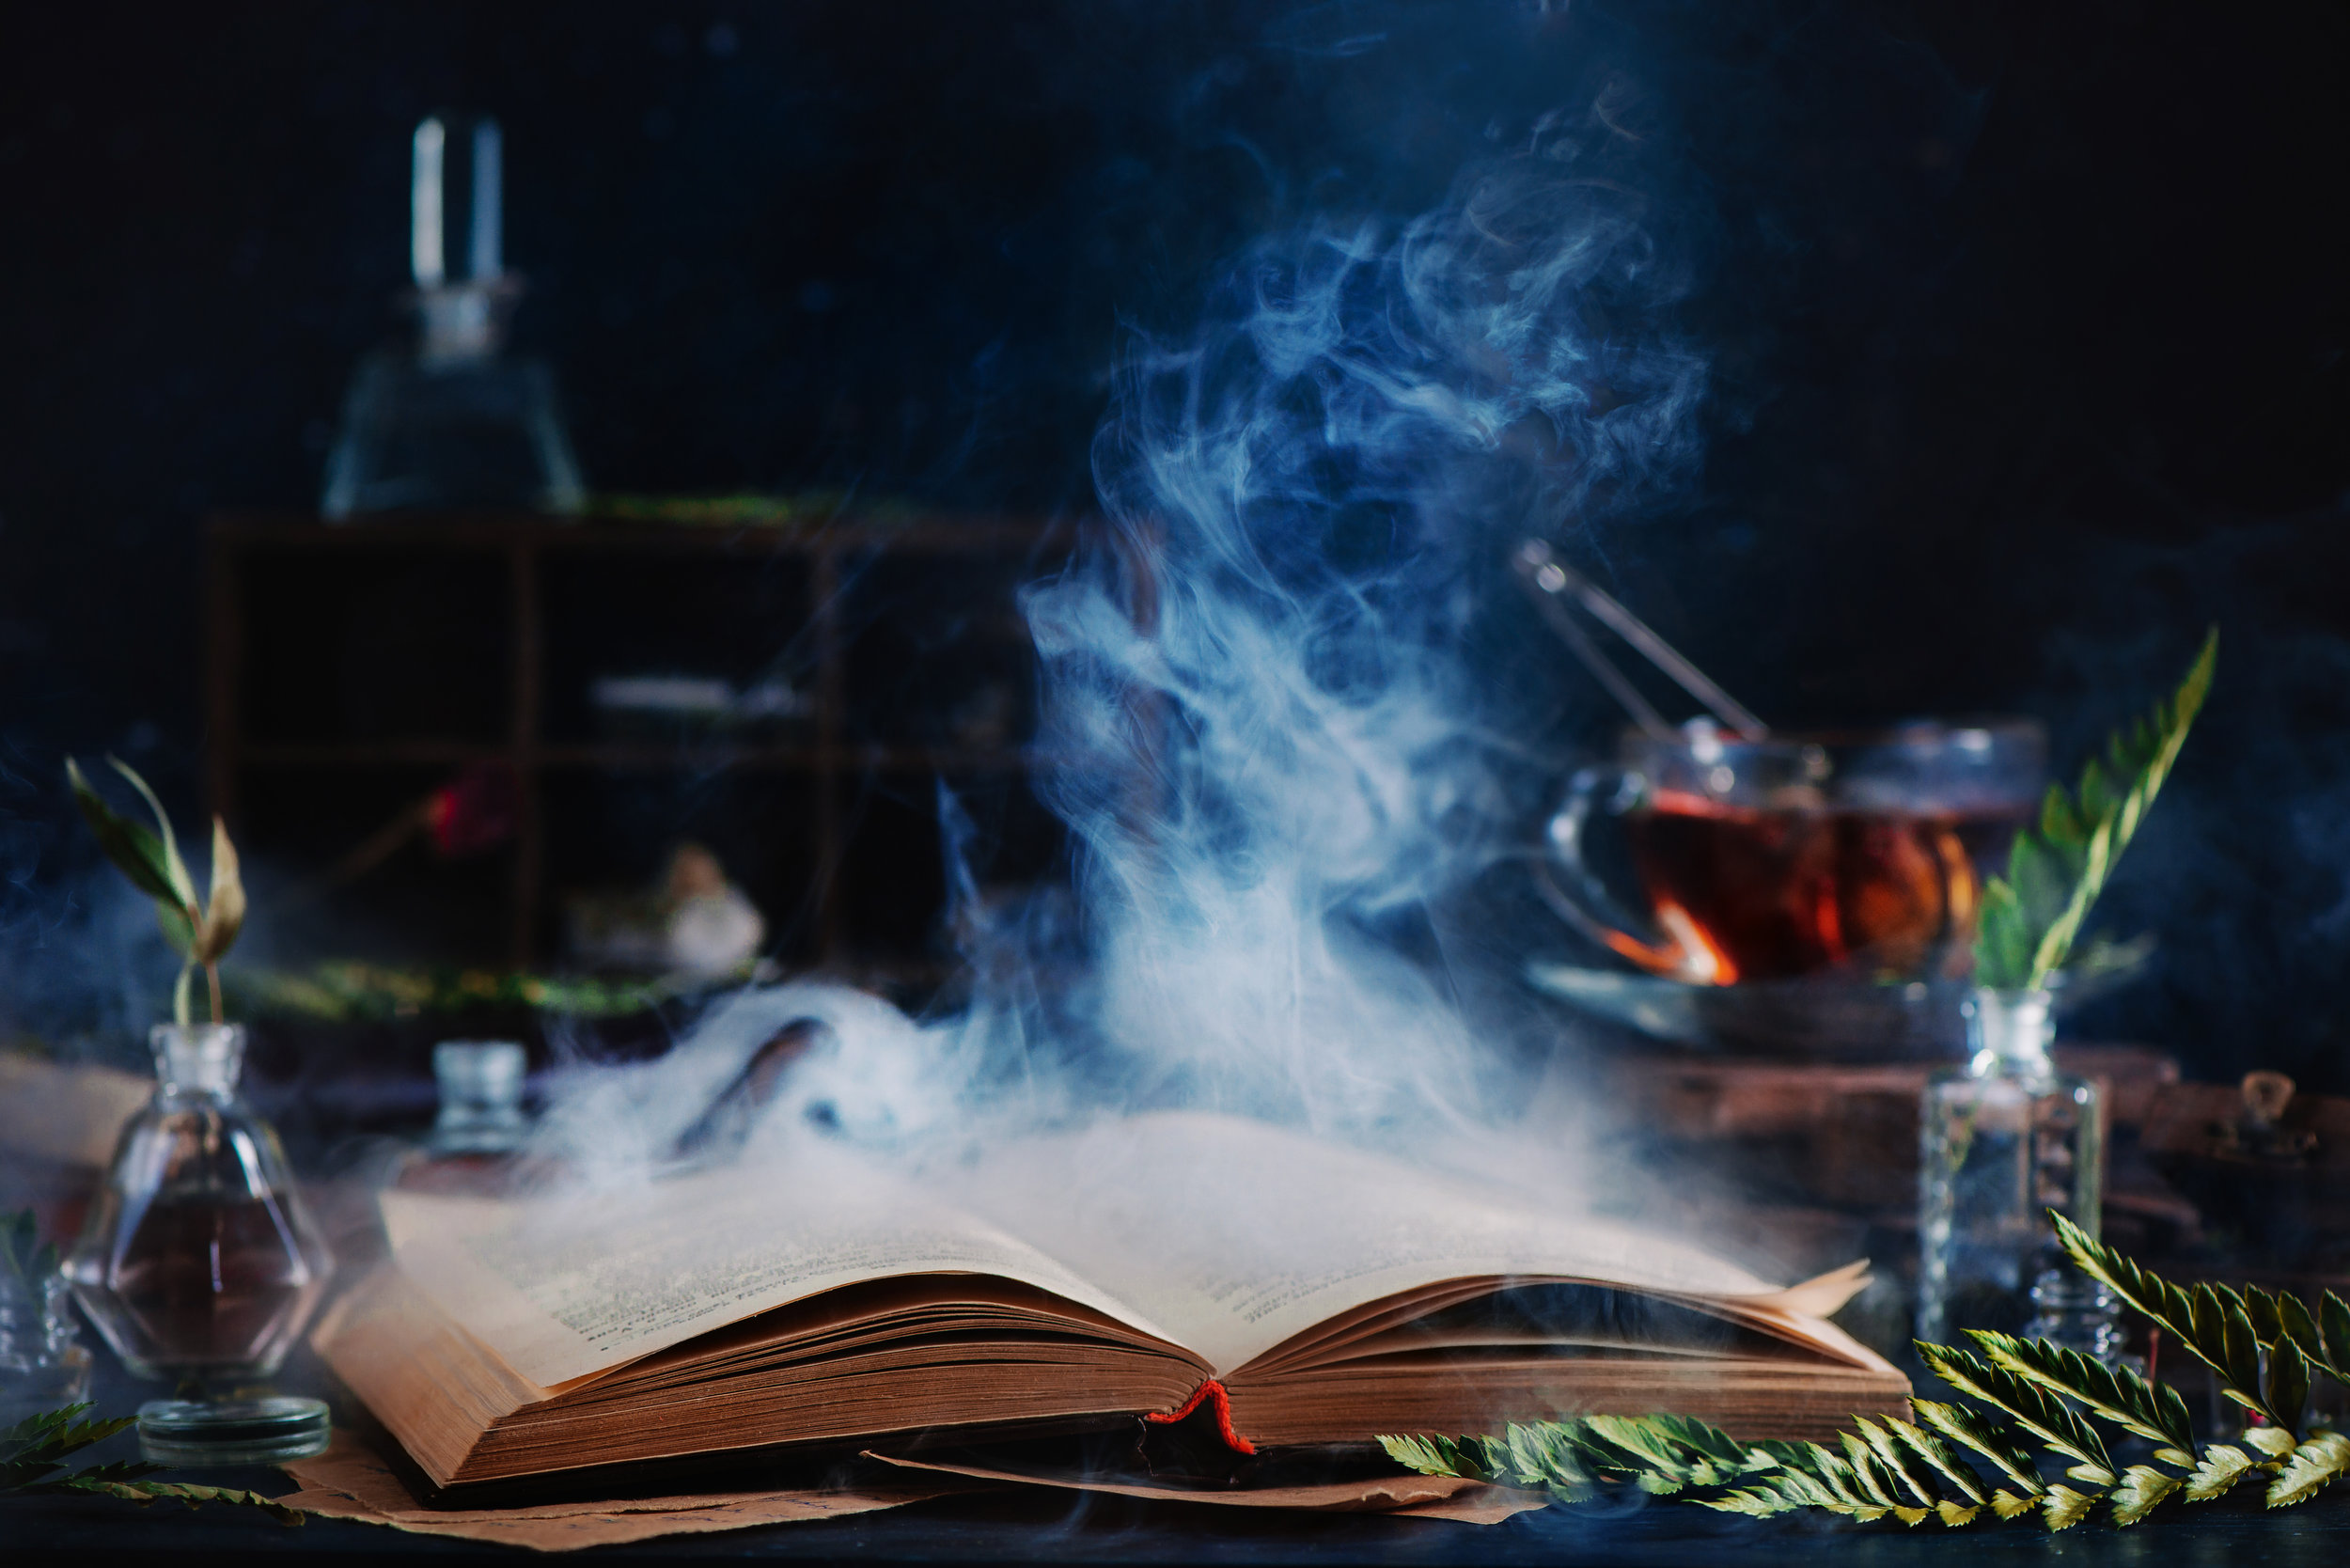 open-spell-book-with-magical-smoke-P7PHXTF.jpg